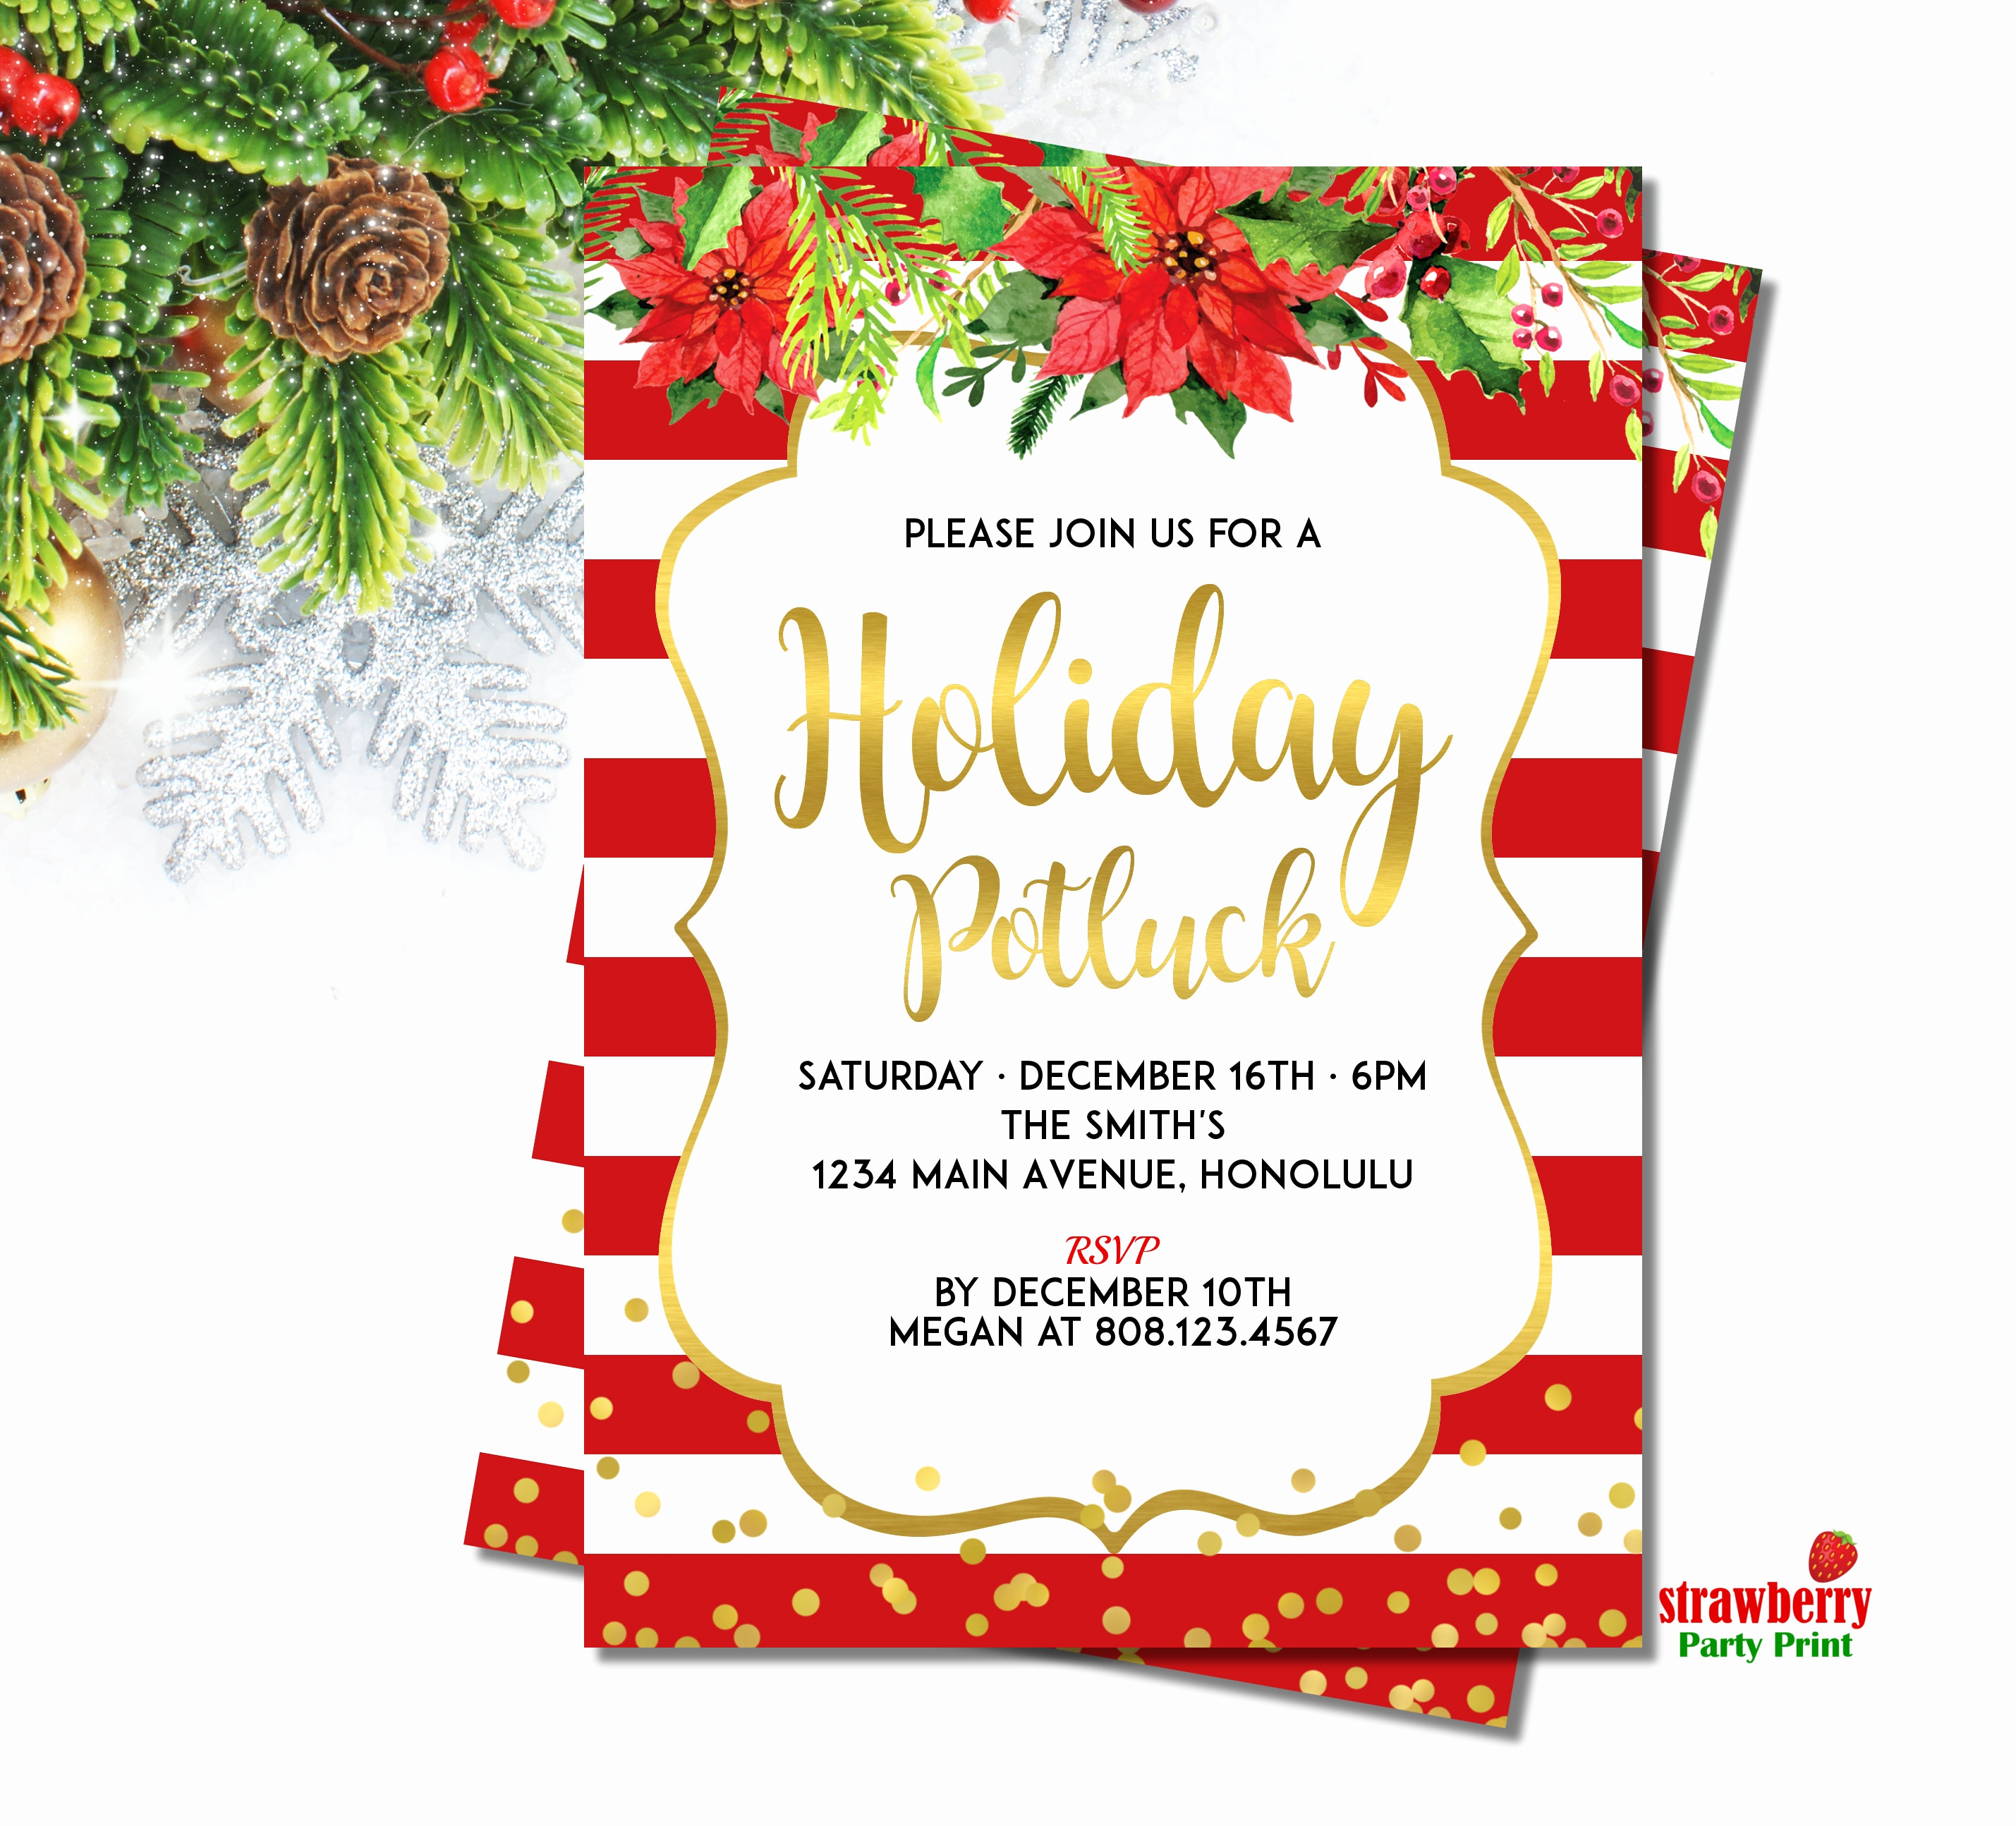 Office Holiday Party Invitation Wording Awesome 19 Fice Potluck Invitation Fice Party Invitation 7